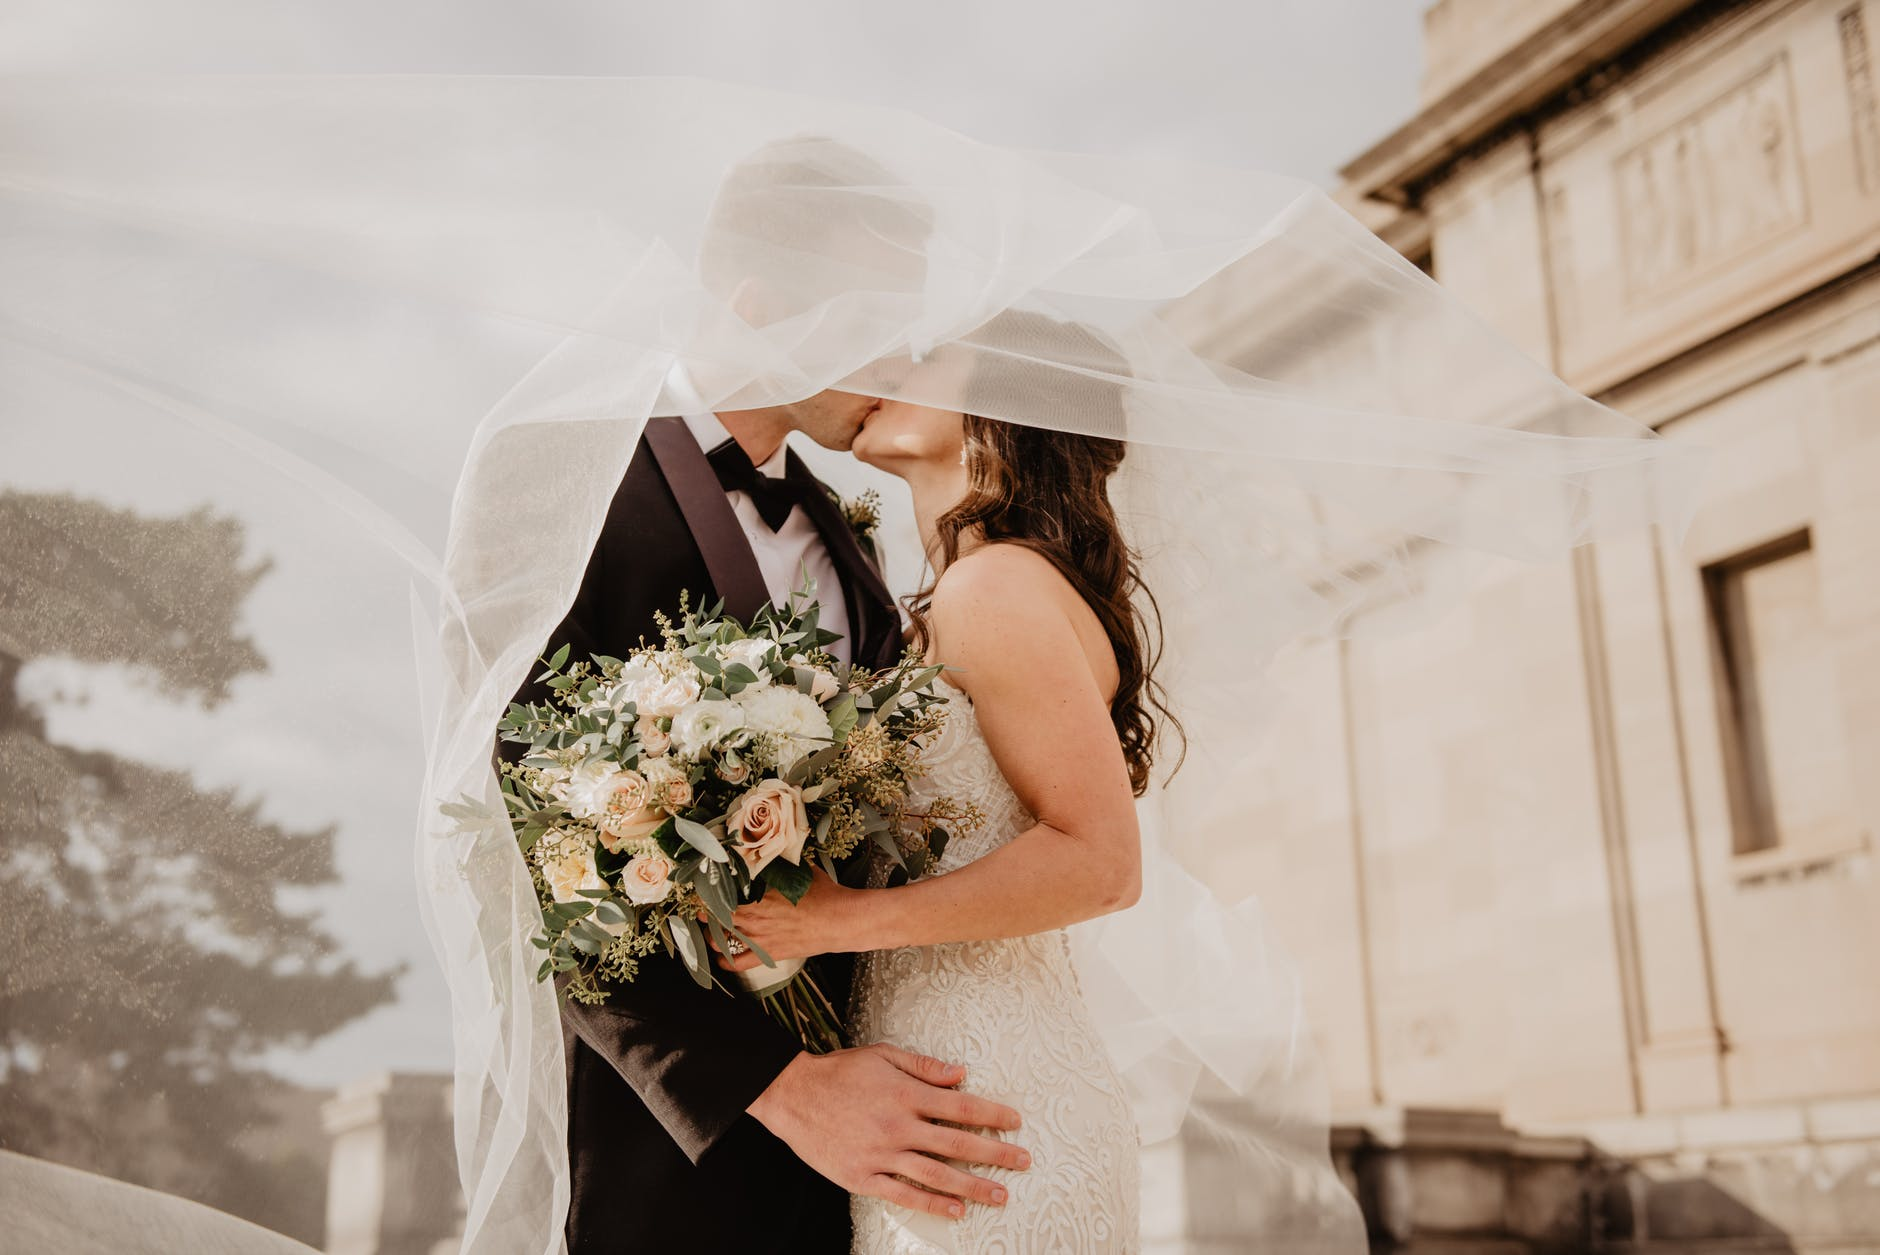 Couples' Priorities, Mindsets, And Relationships Are Shifting As They Replan, Not Cancel, Their Weddings, According To Zola Study